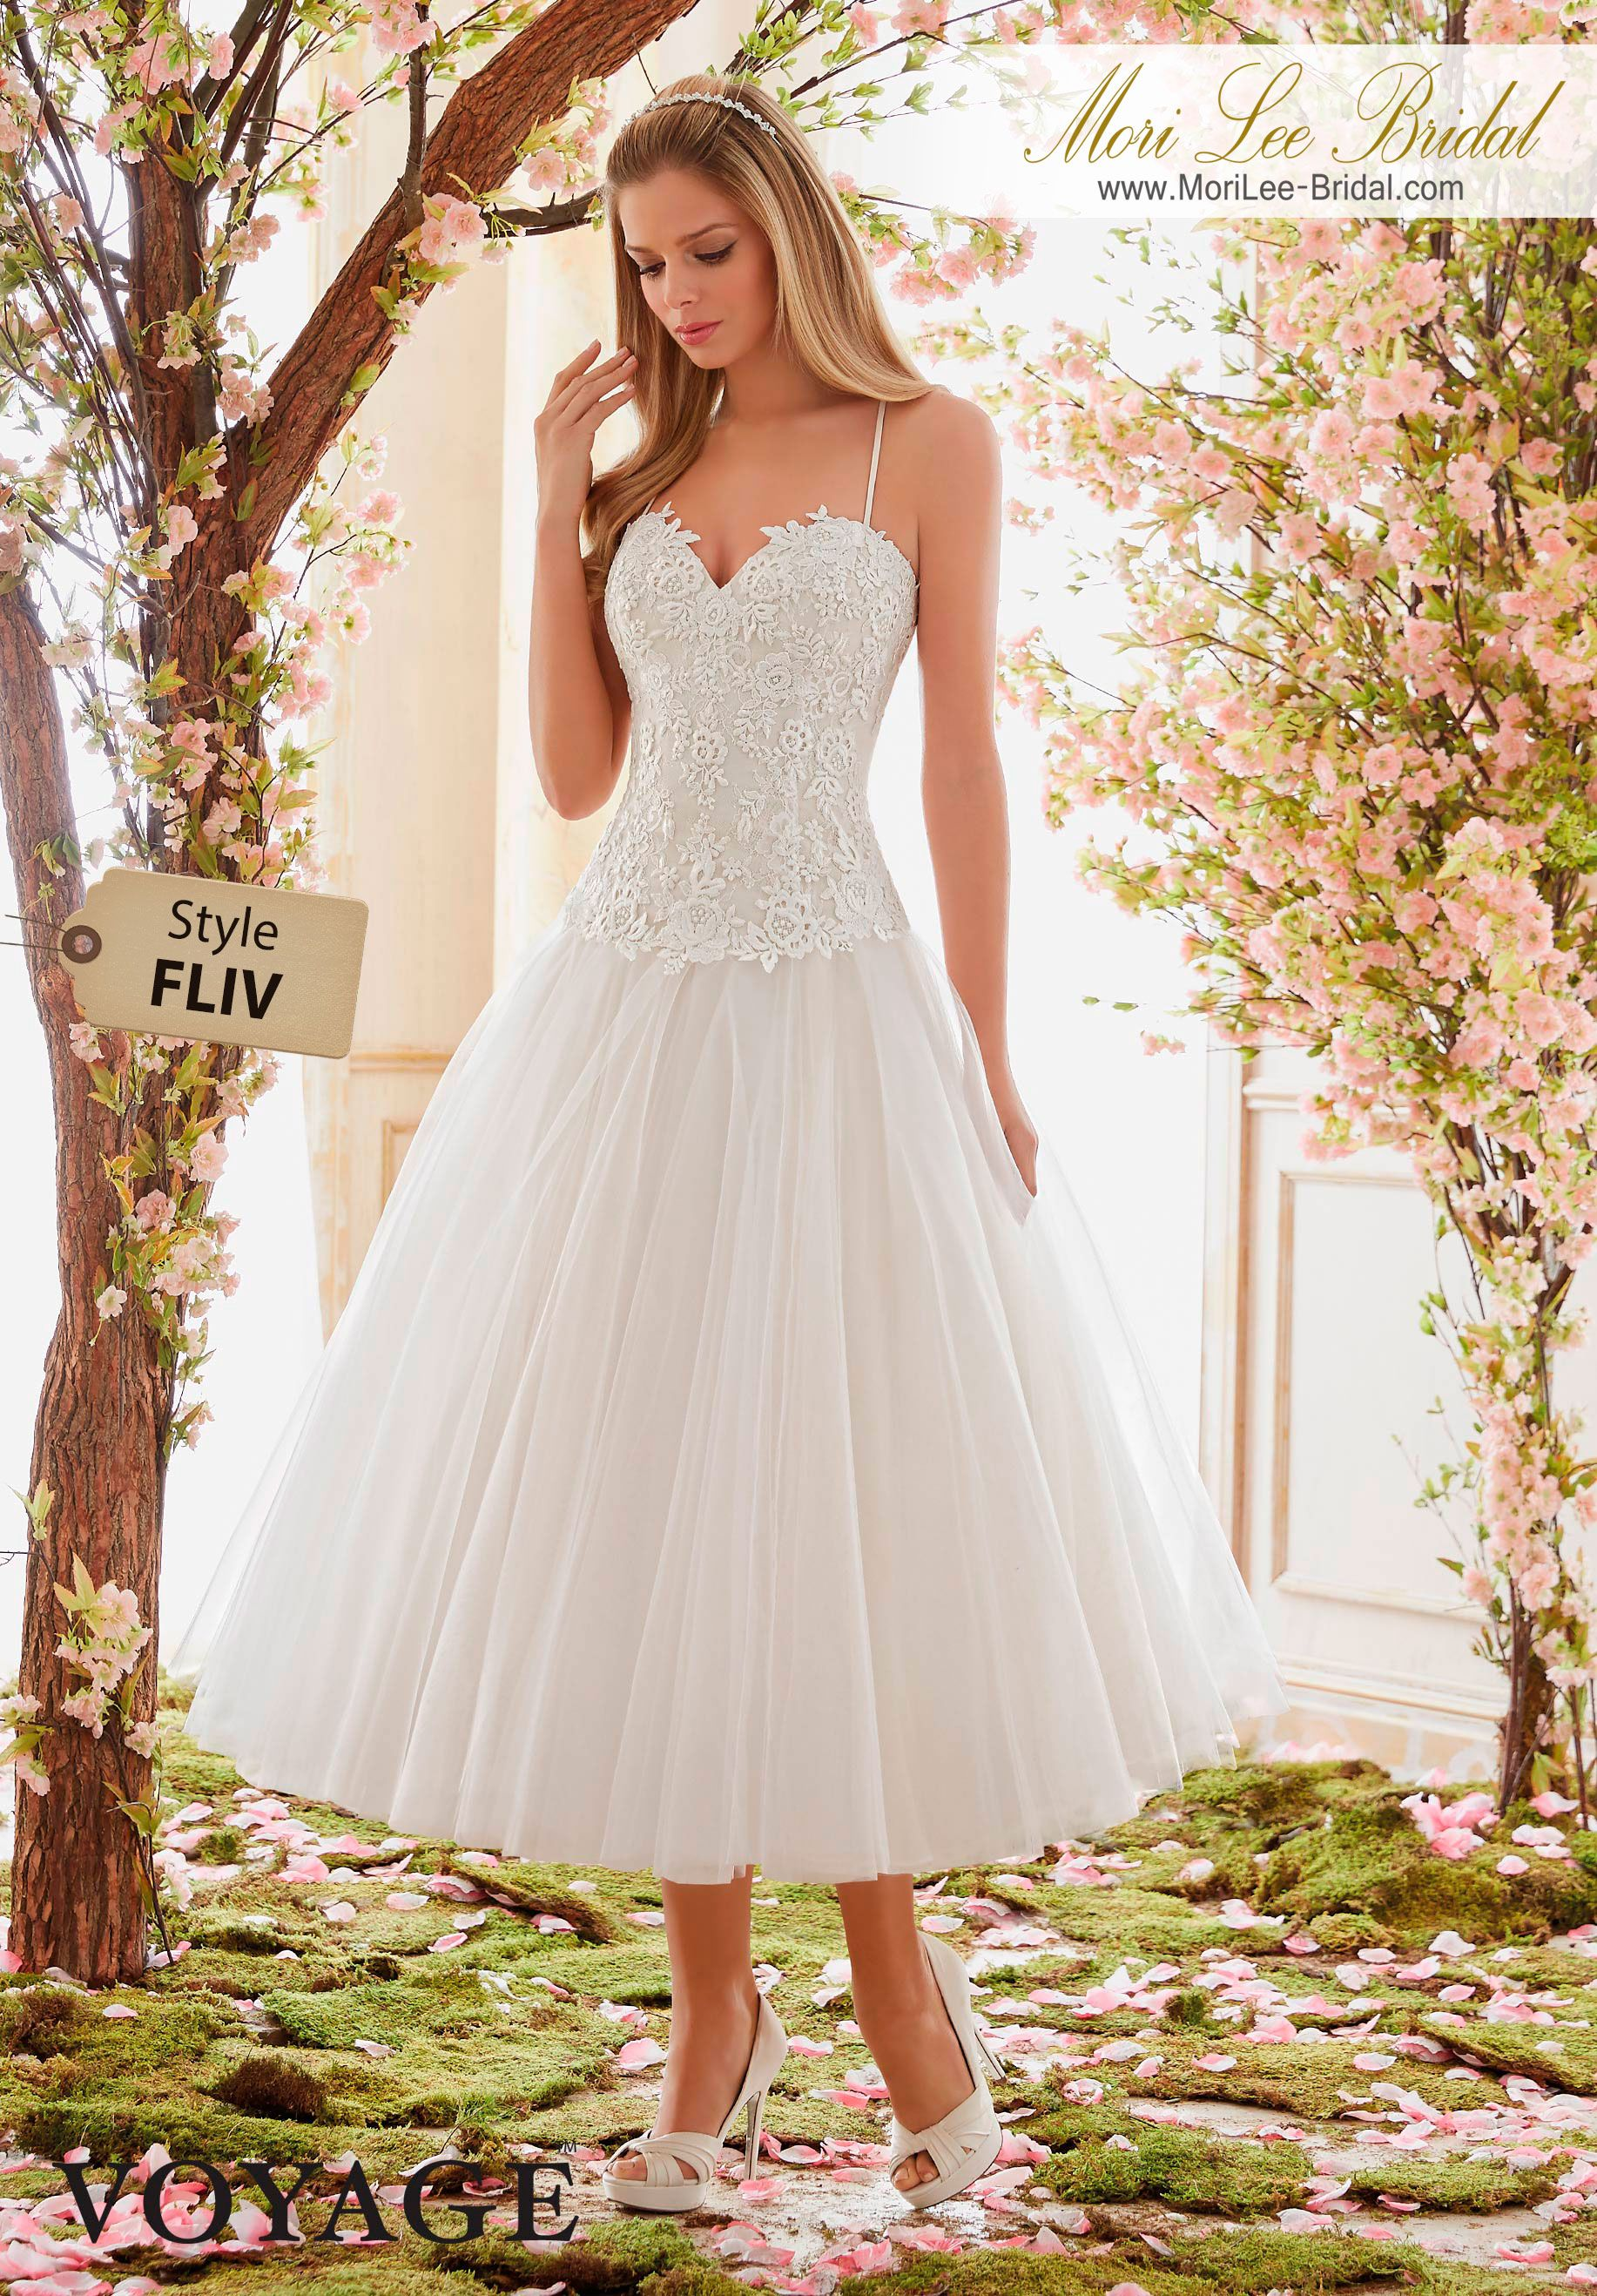 Dress style fliv tulle tealength skirt colors available white